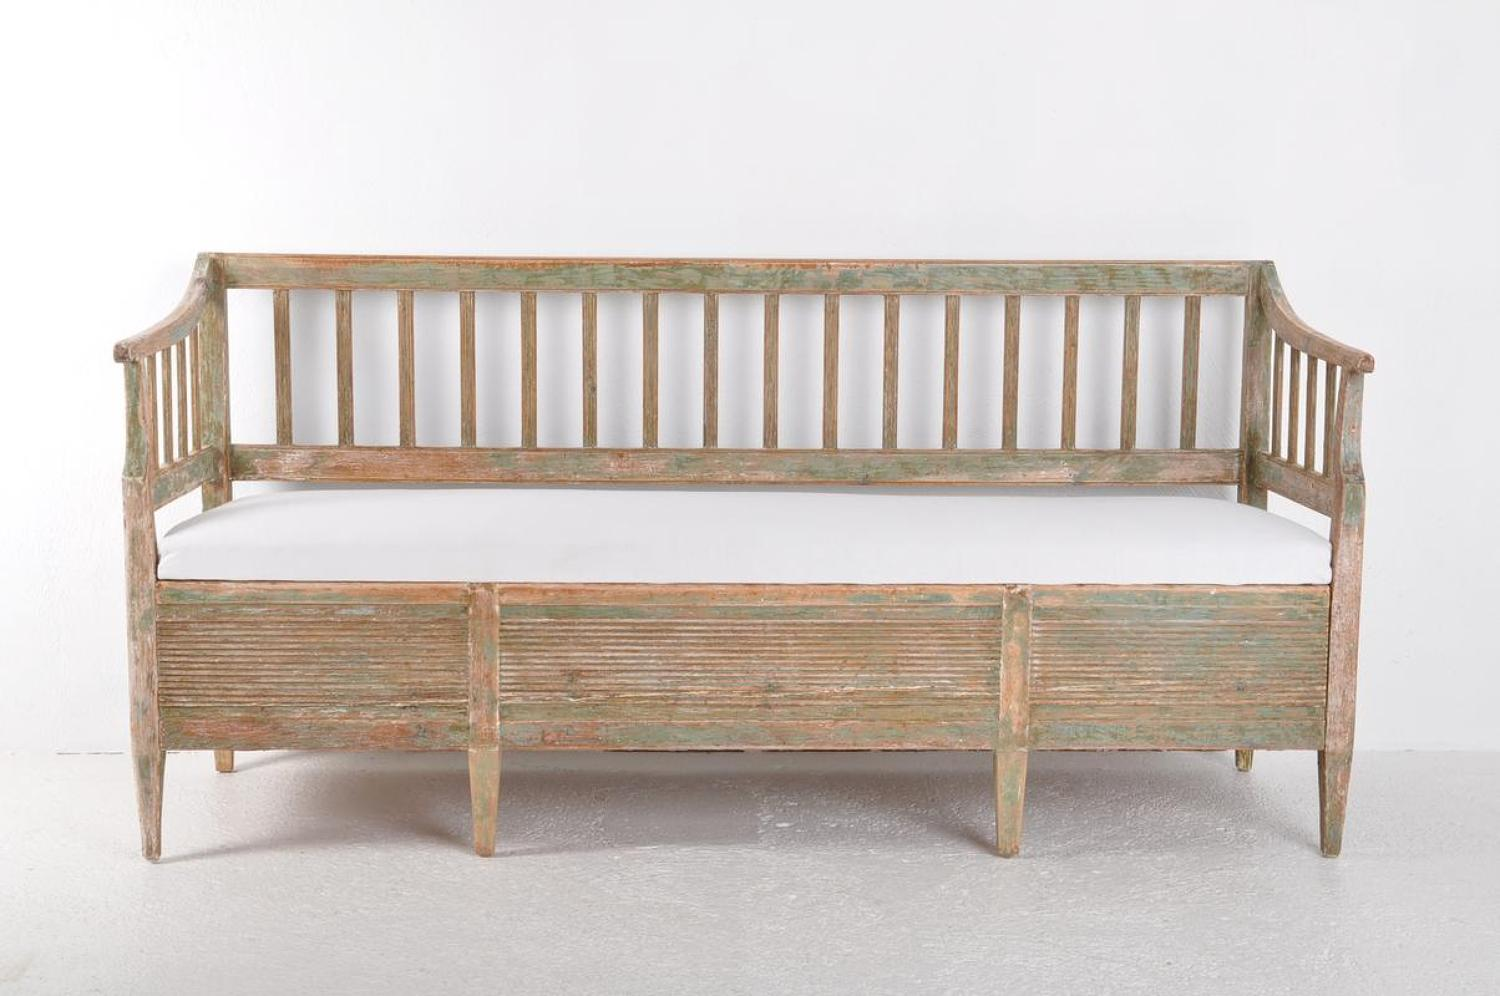 Swedish Gustavian Period Sofa Bench, Circa 1800